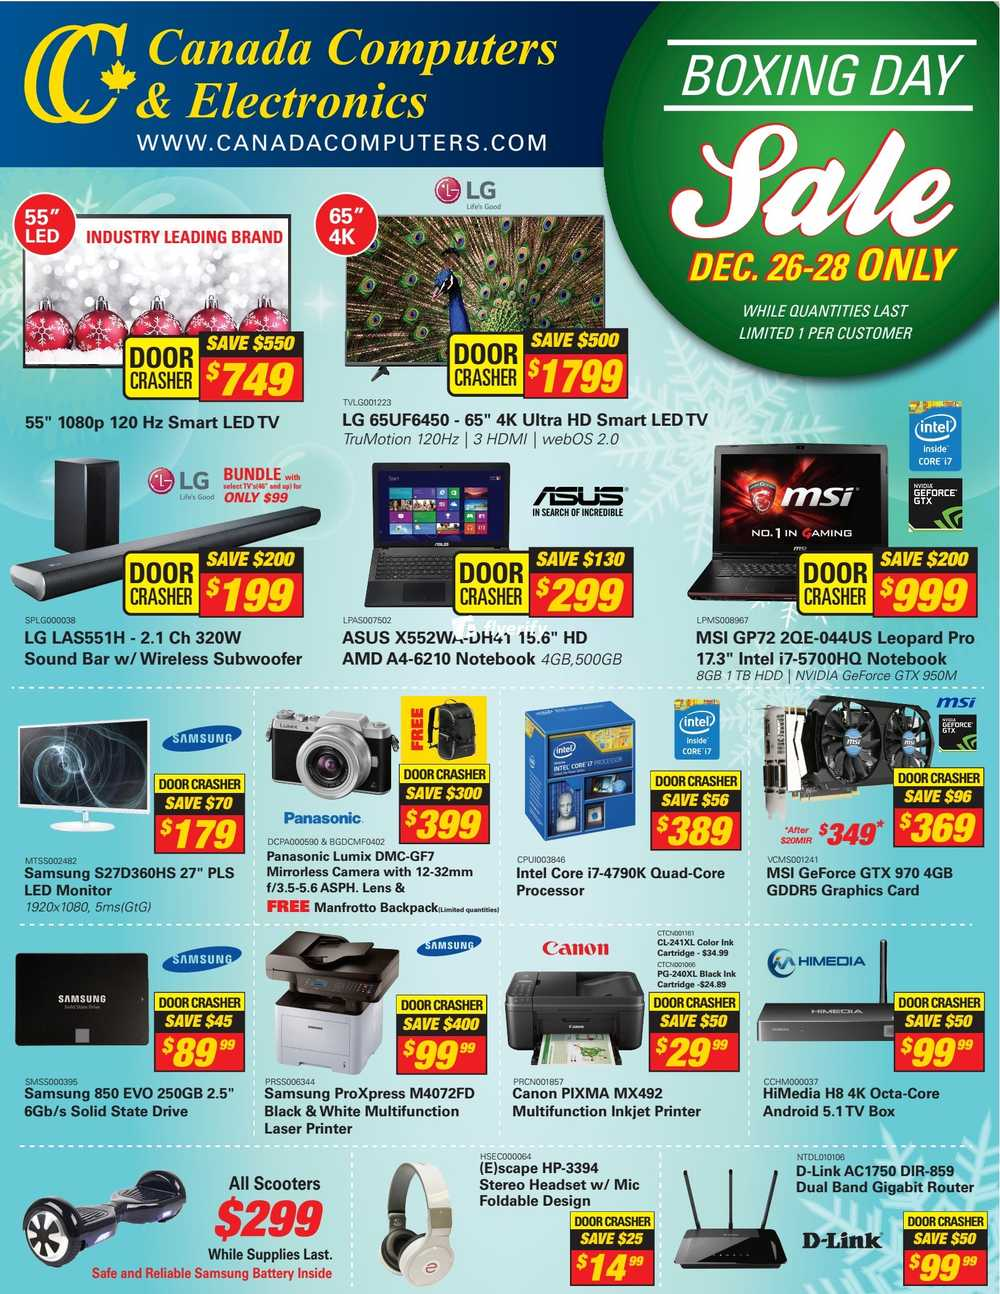 canada computers boxing day sale flyer 2015 canada. Black Bedroom Furniture Sets. Home Design Ideas